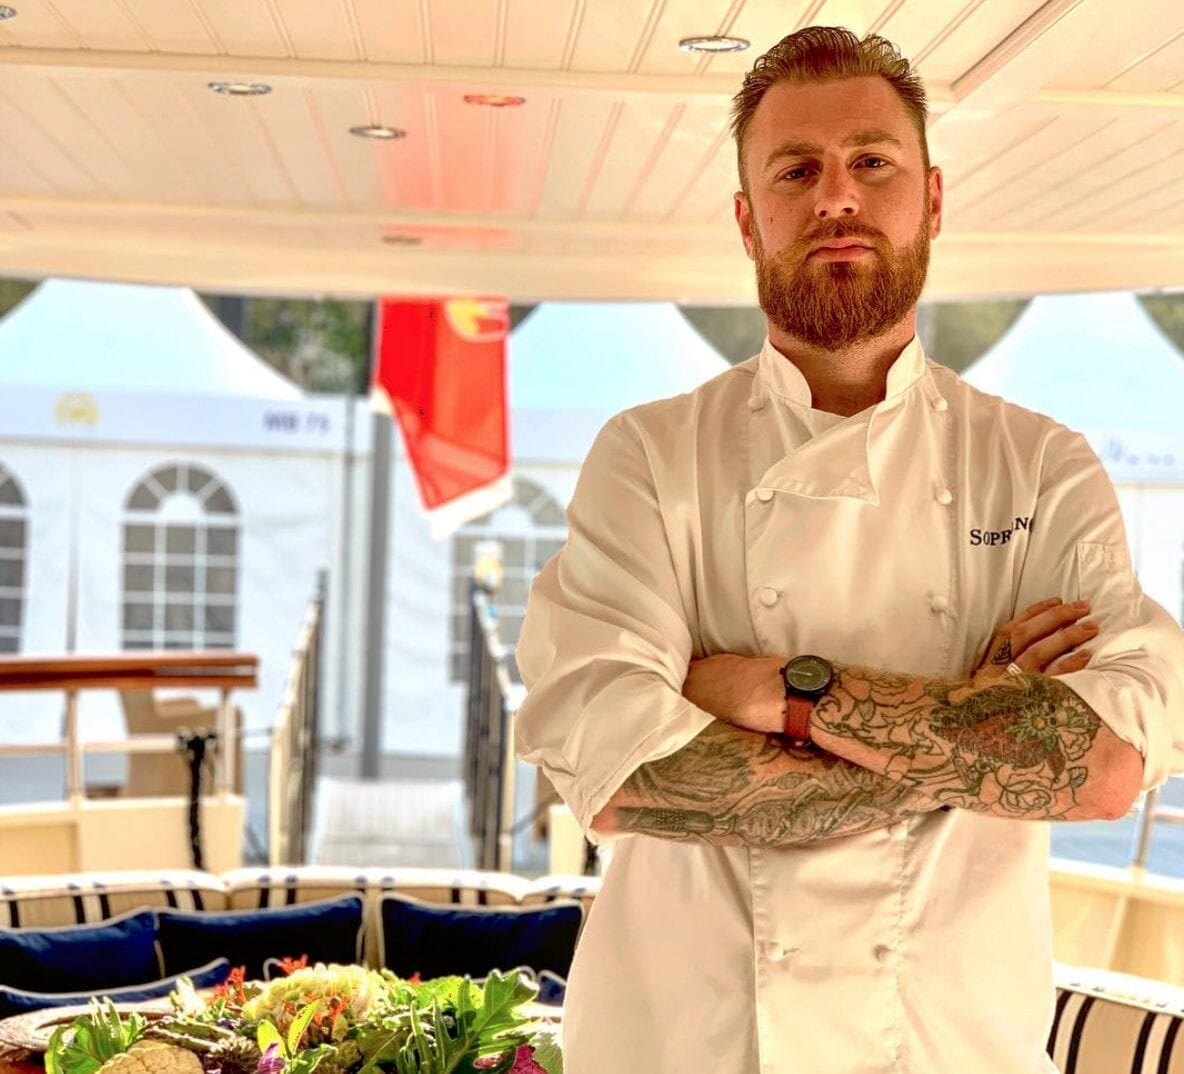 The Superyacht Chef